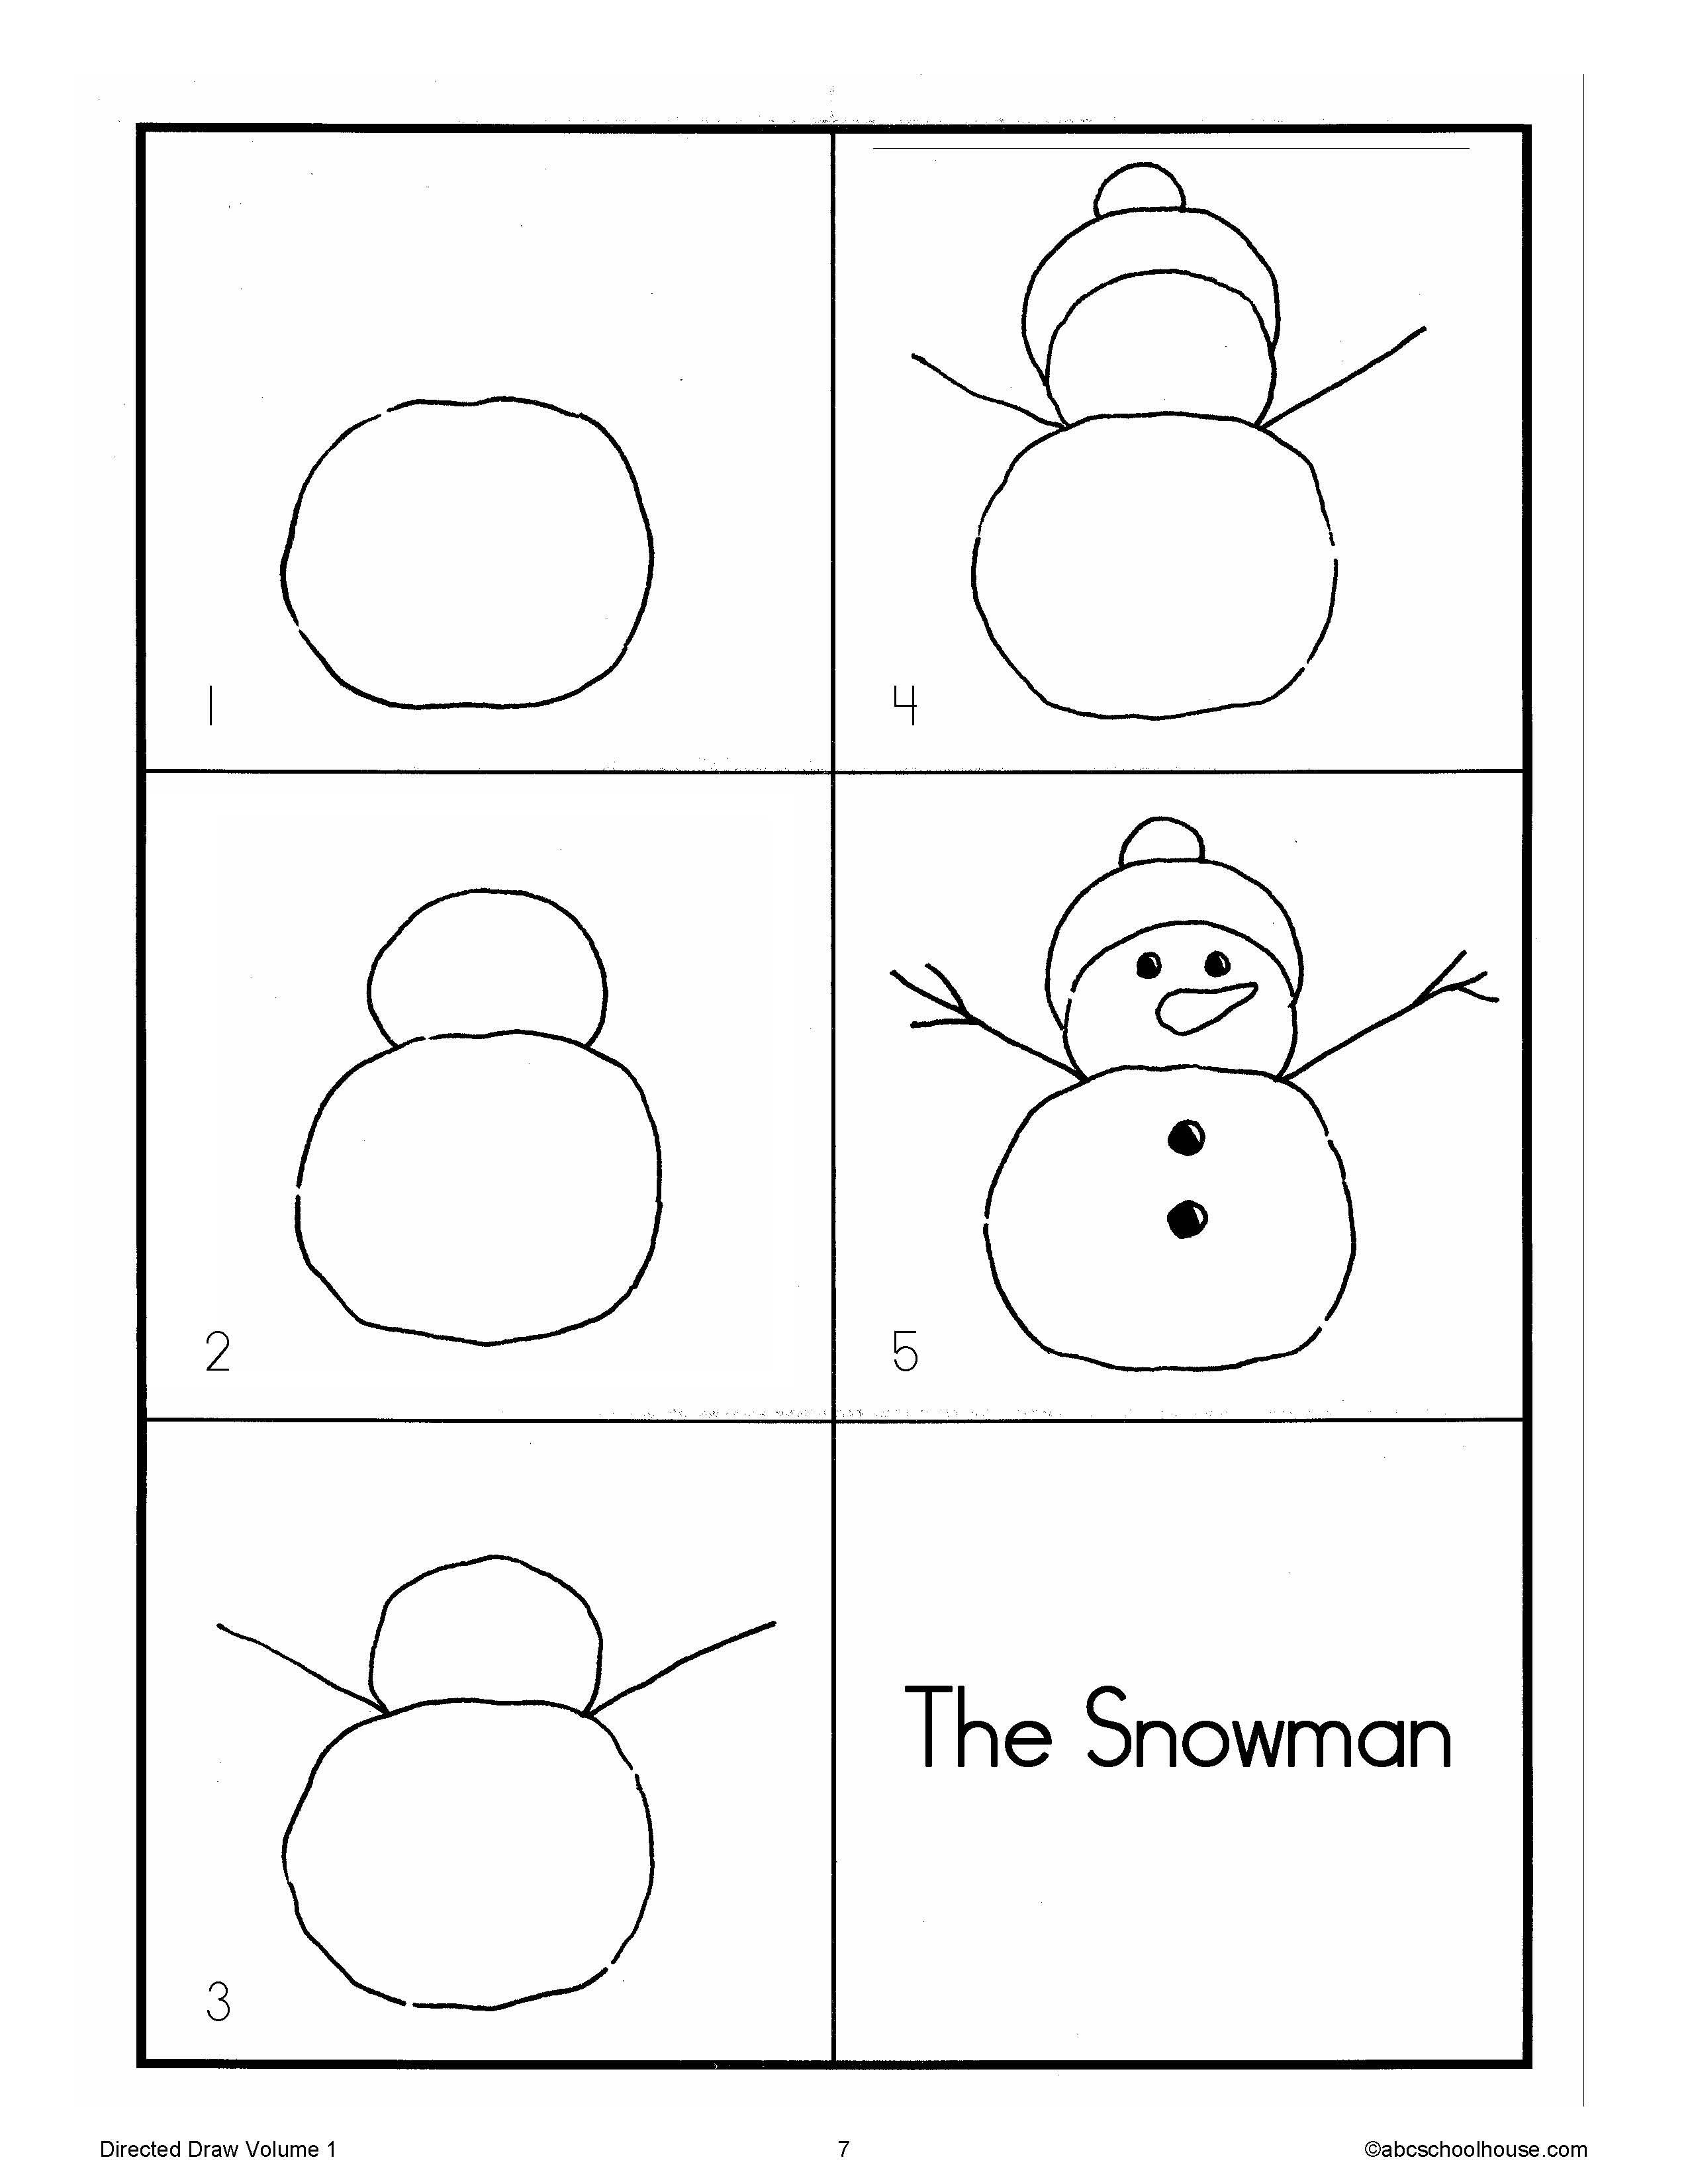 Directed Drawing Snowman